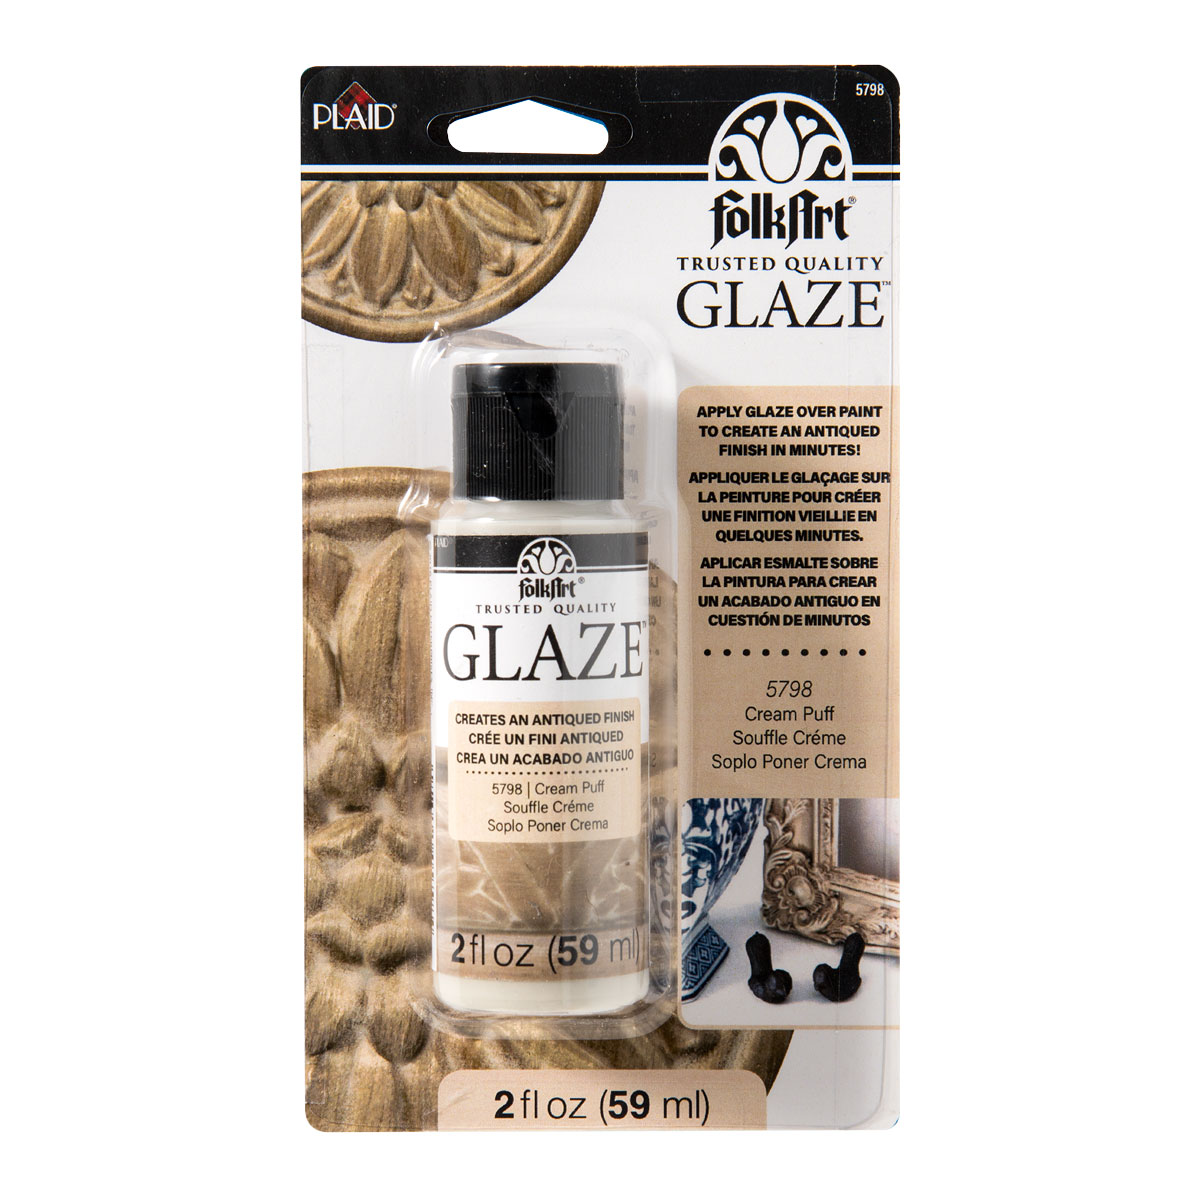 FolkArt ® Glaze™ - Cream Puff, 2 oz. Carded